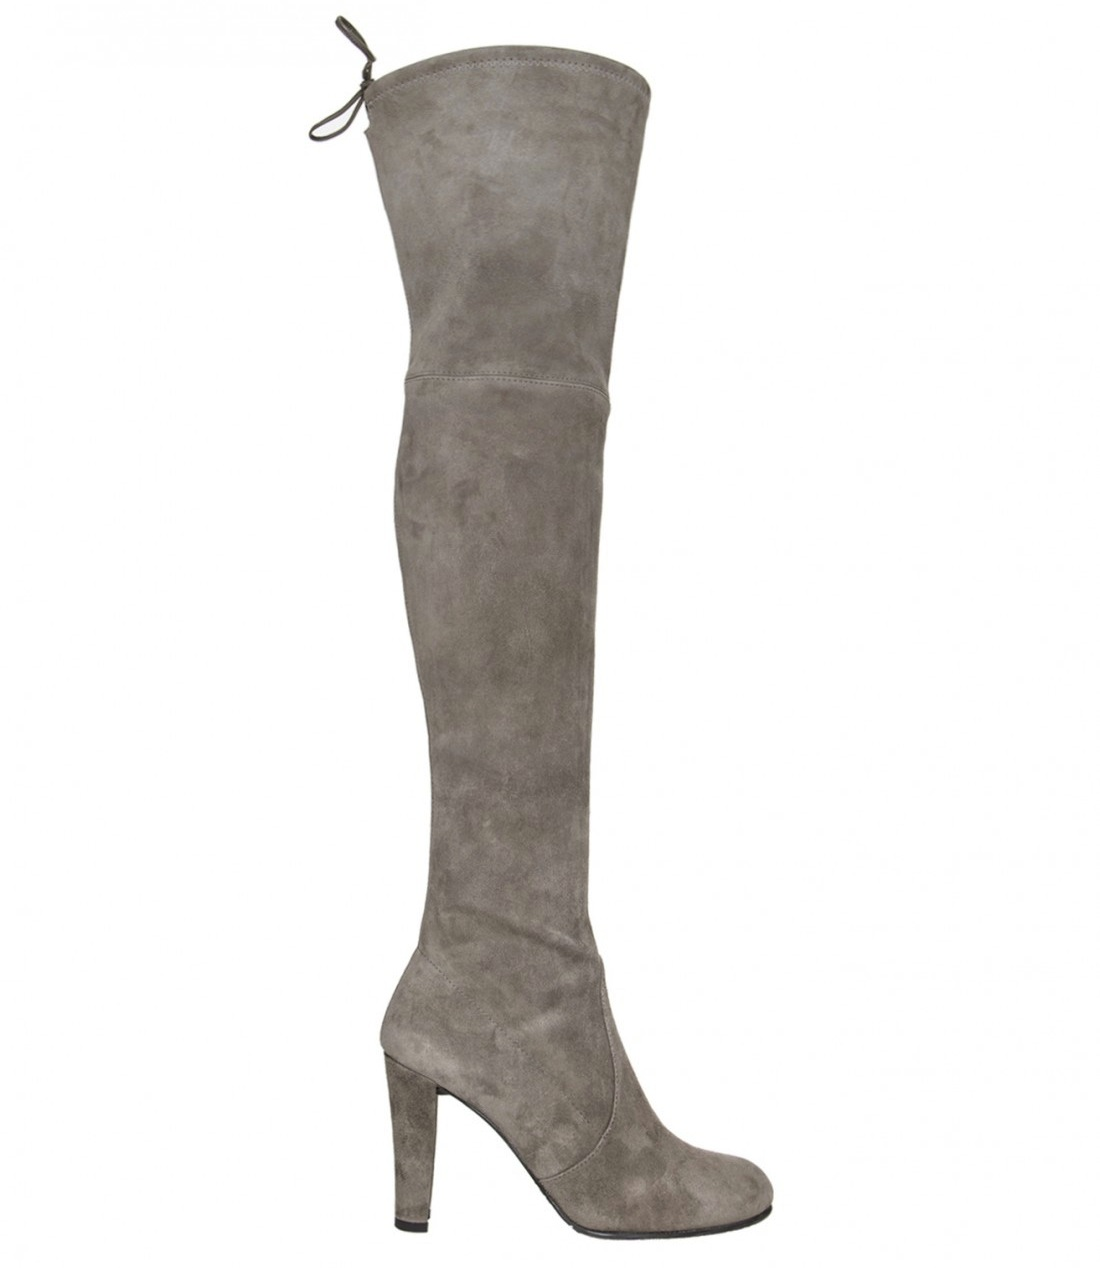 stuart-weitzman-over-the-knee-boots